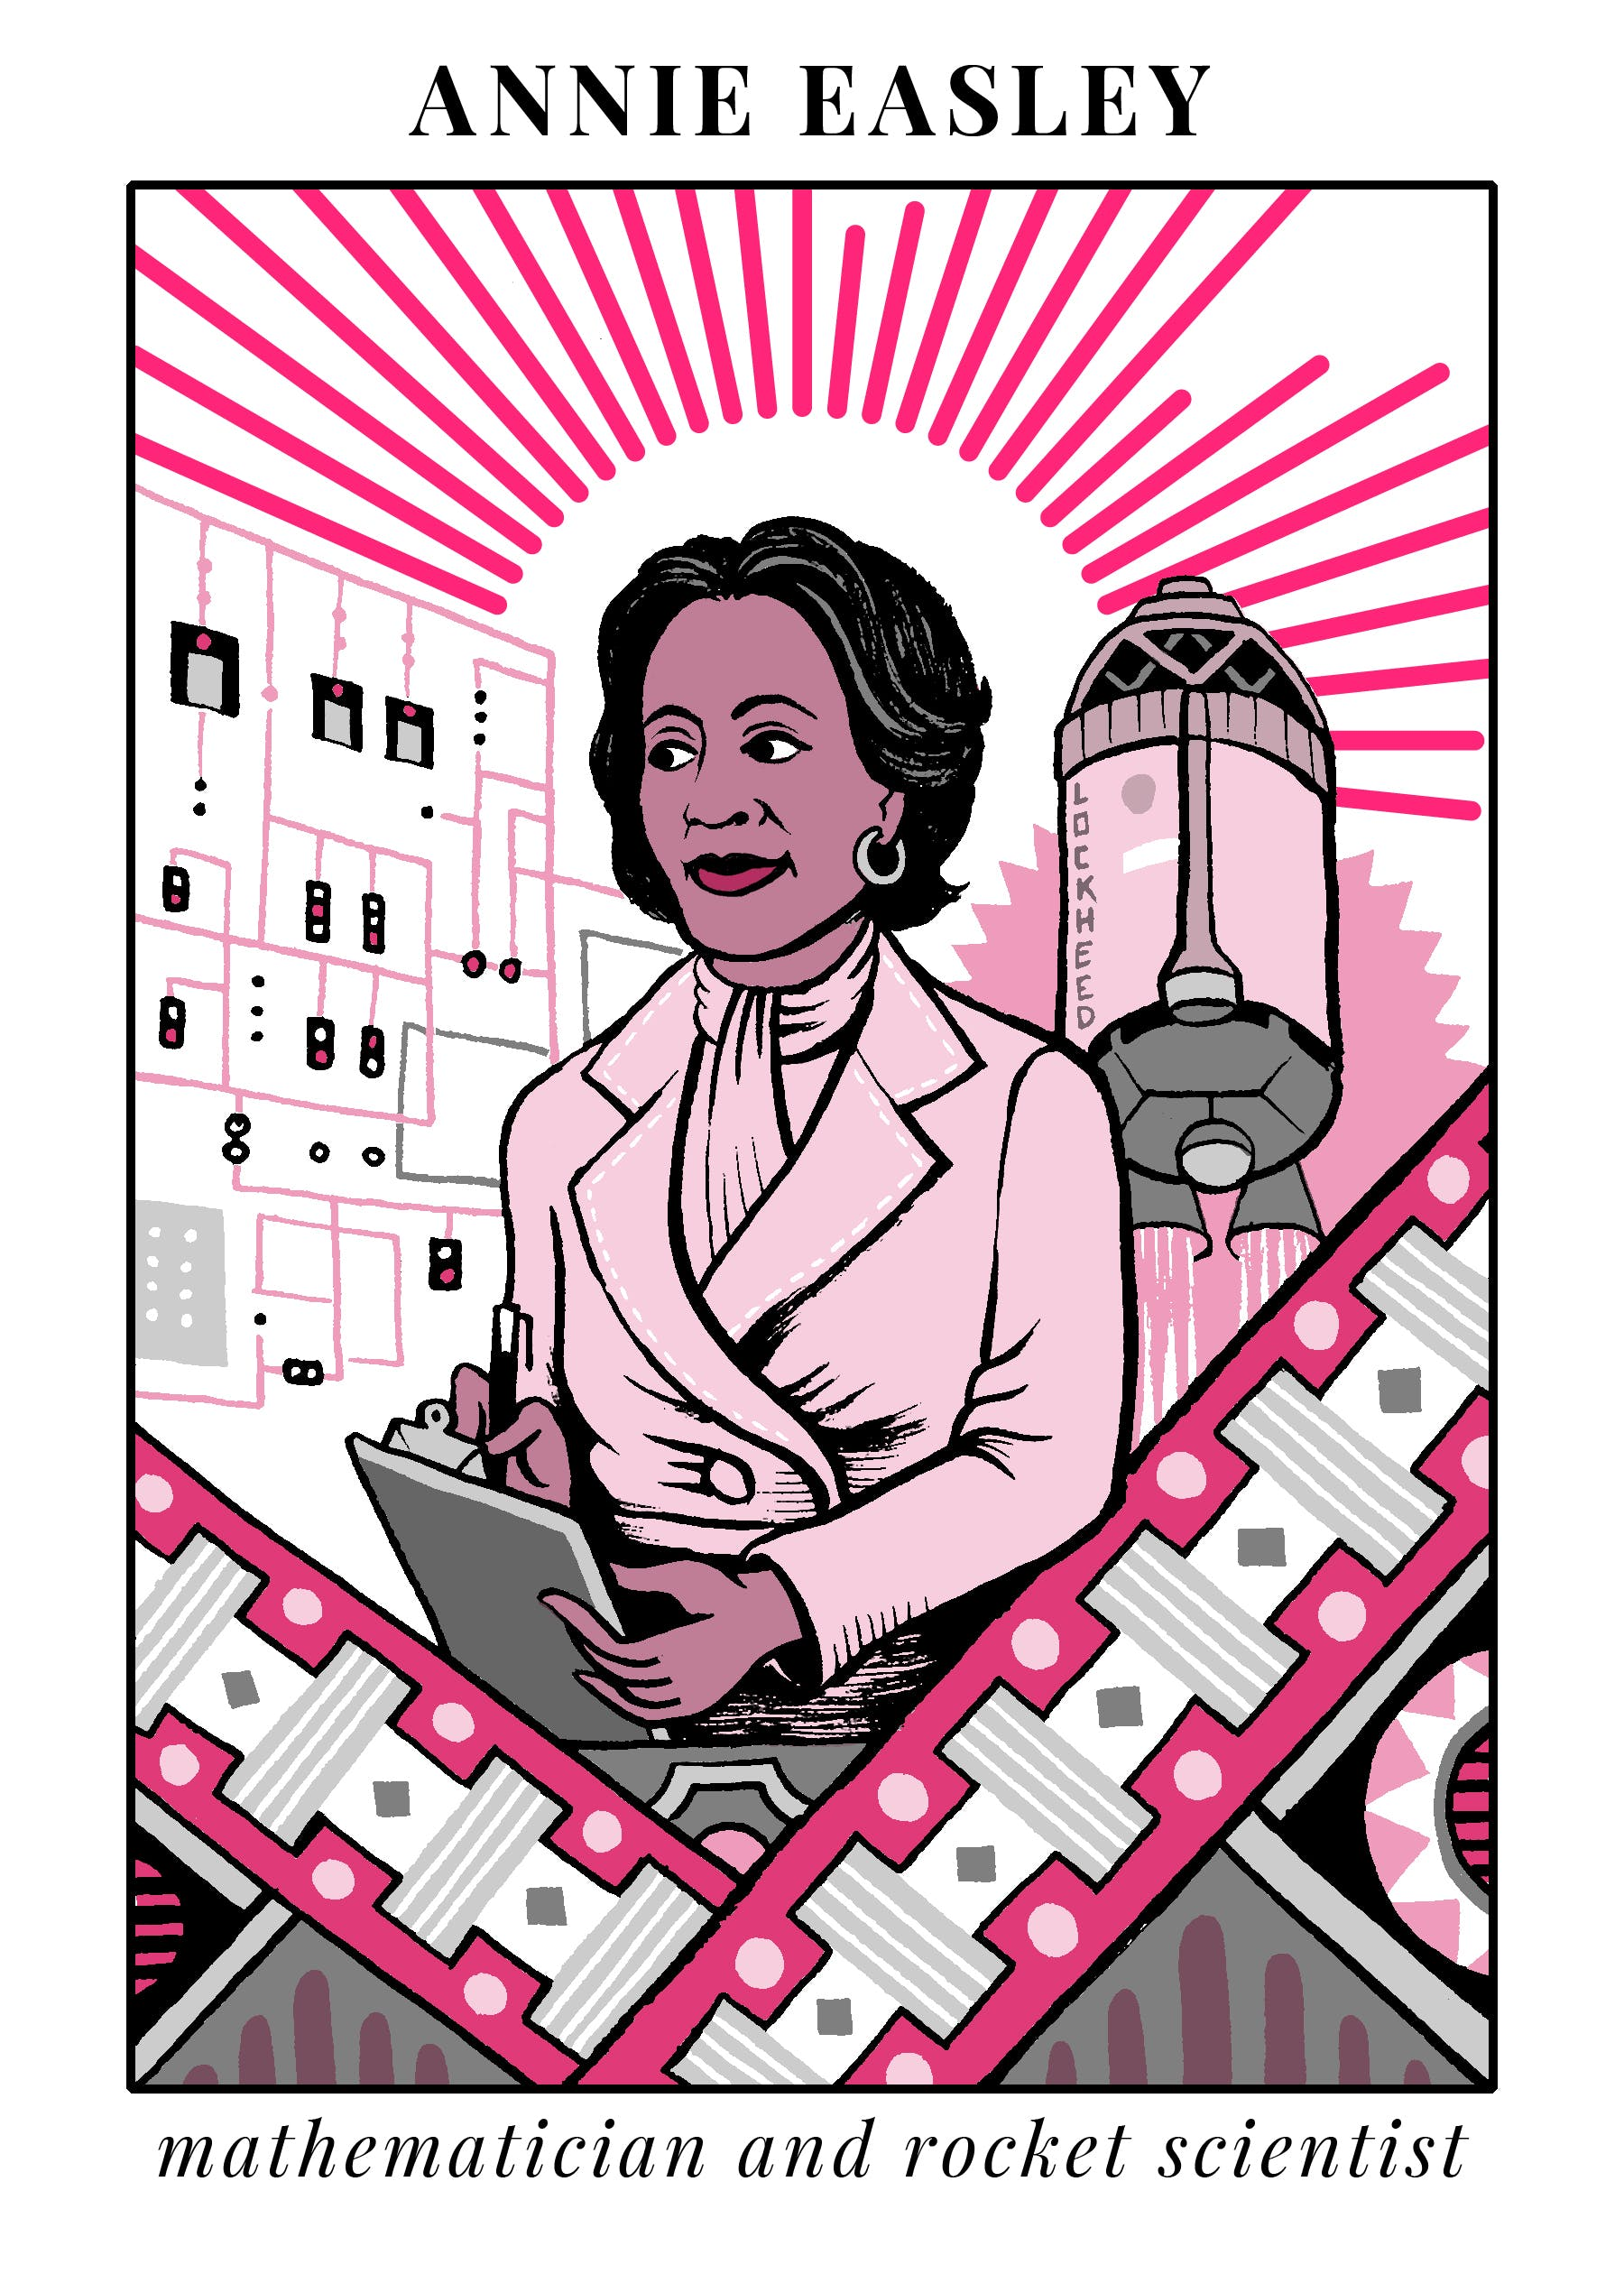 illustration of Annie Easley